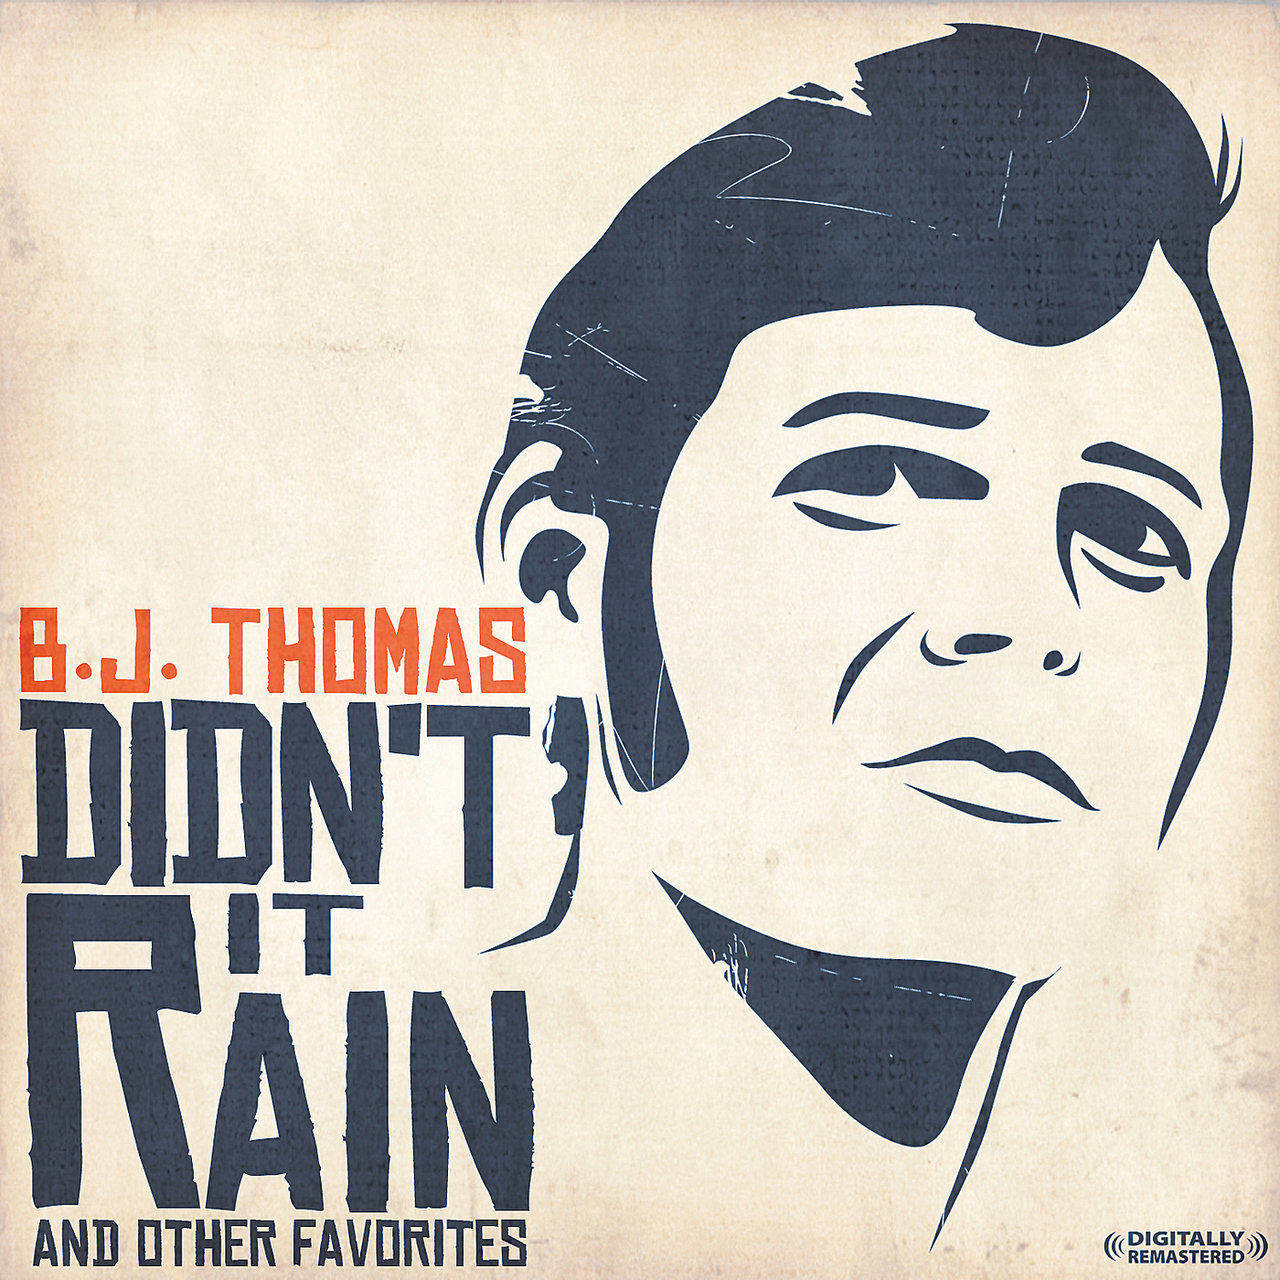 TIDAL: Listen to B.J. Thomas: All-Time Greatest Hits on TIDAL